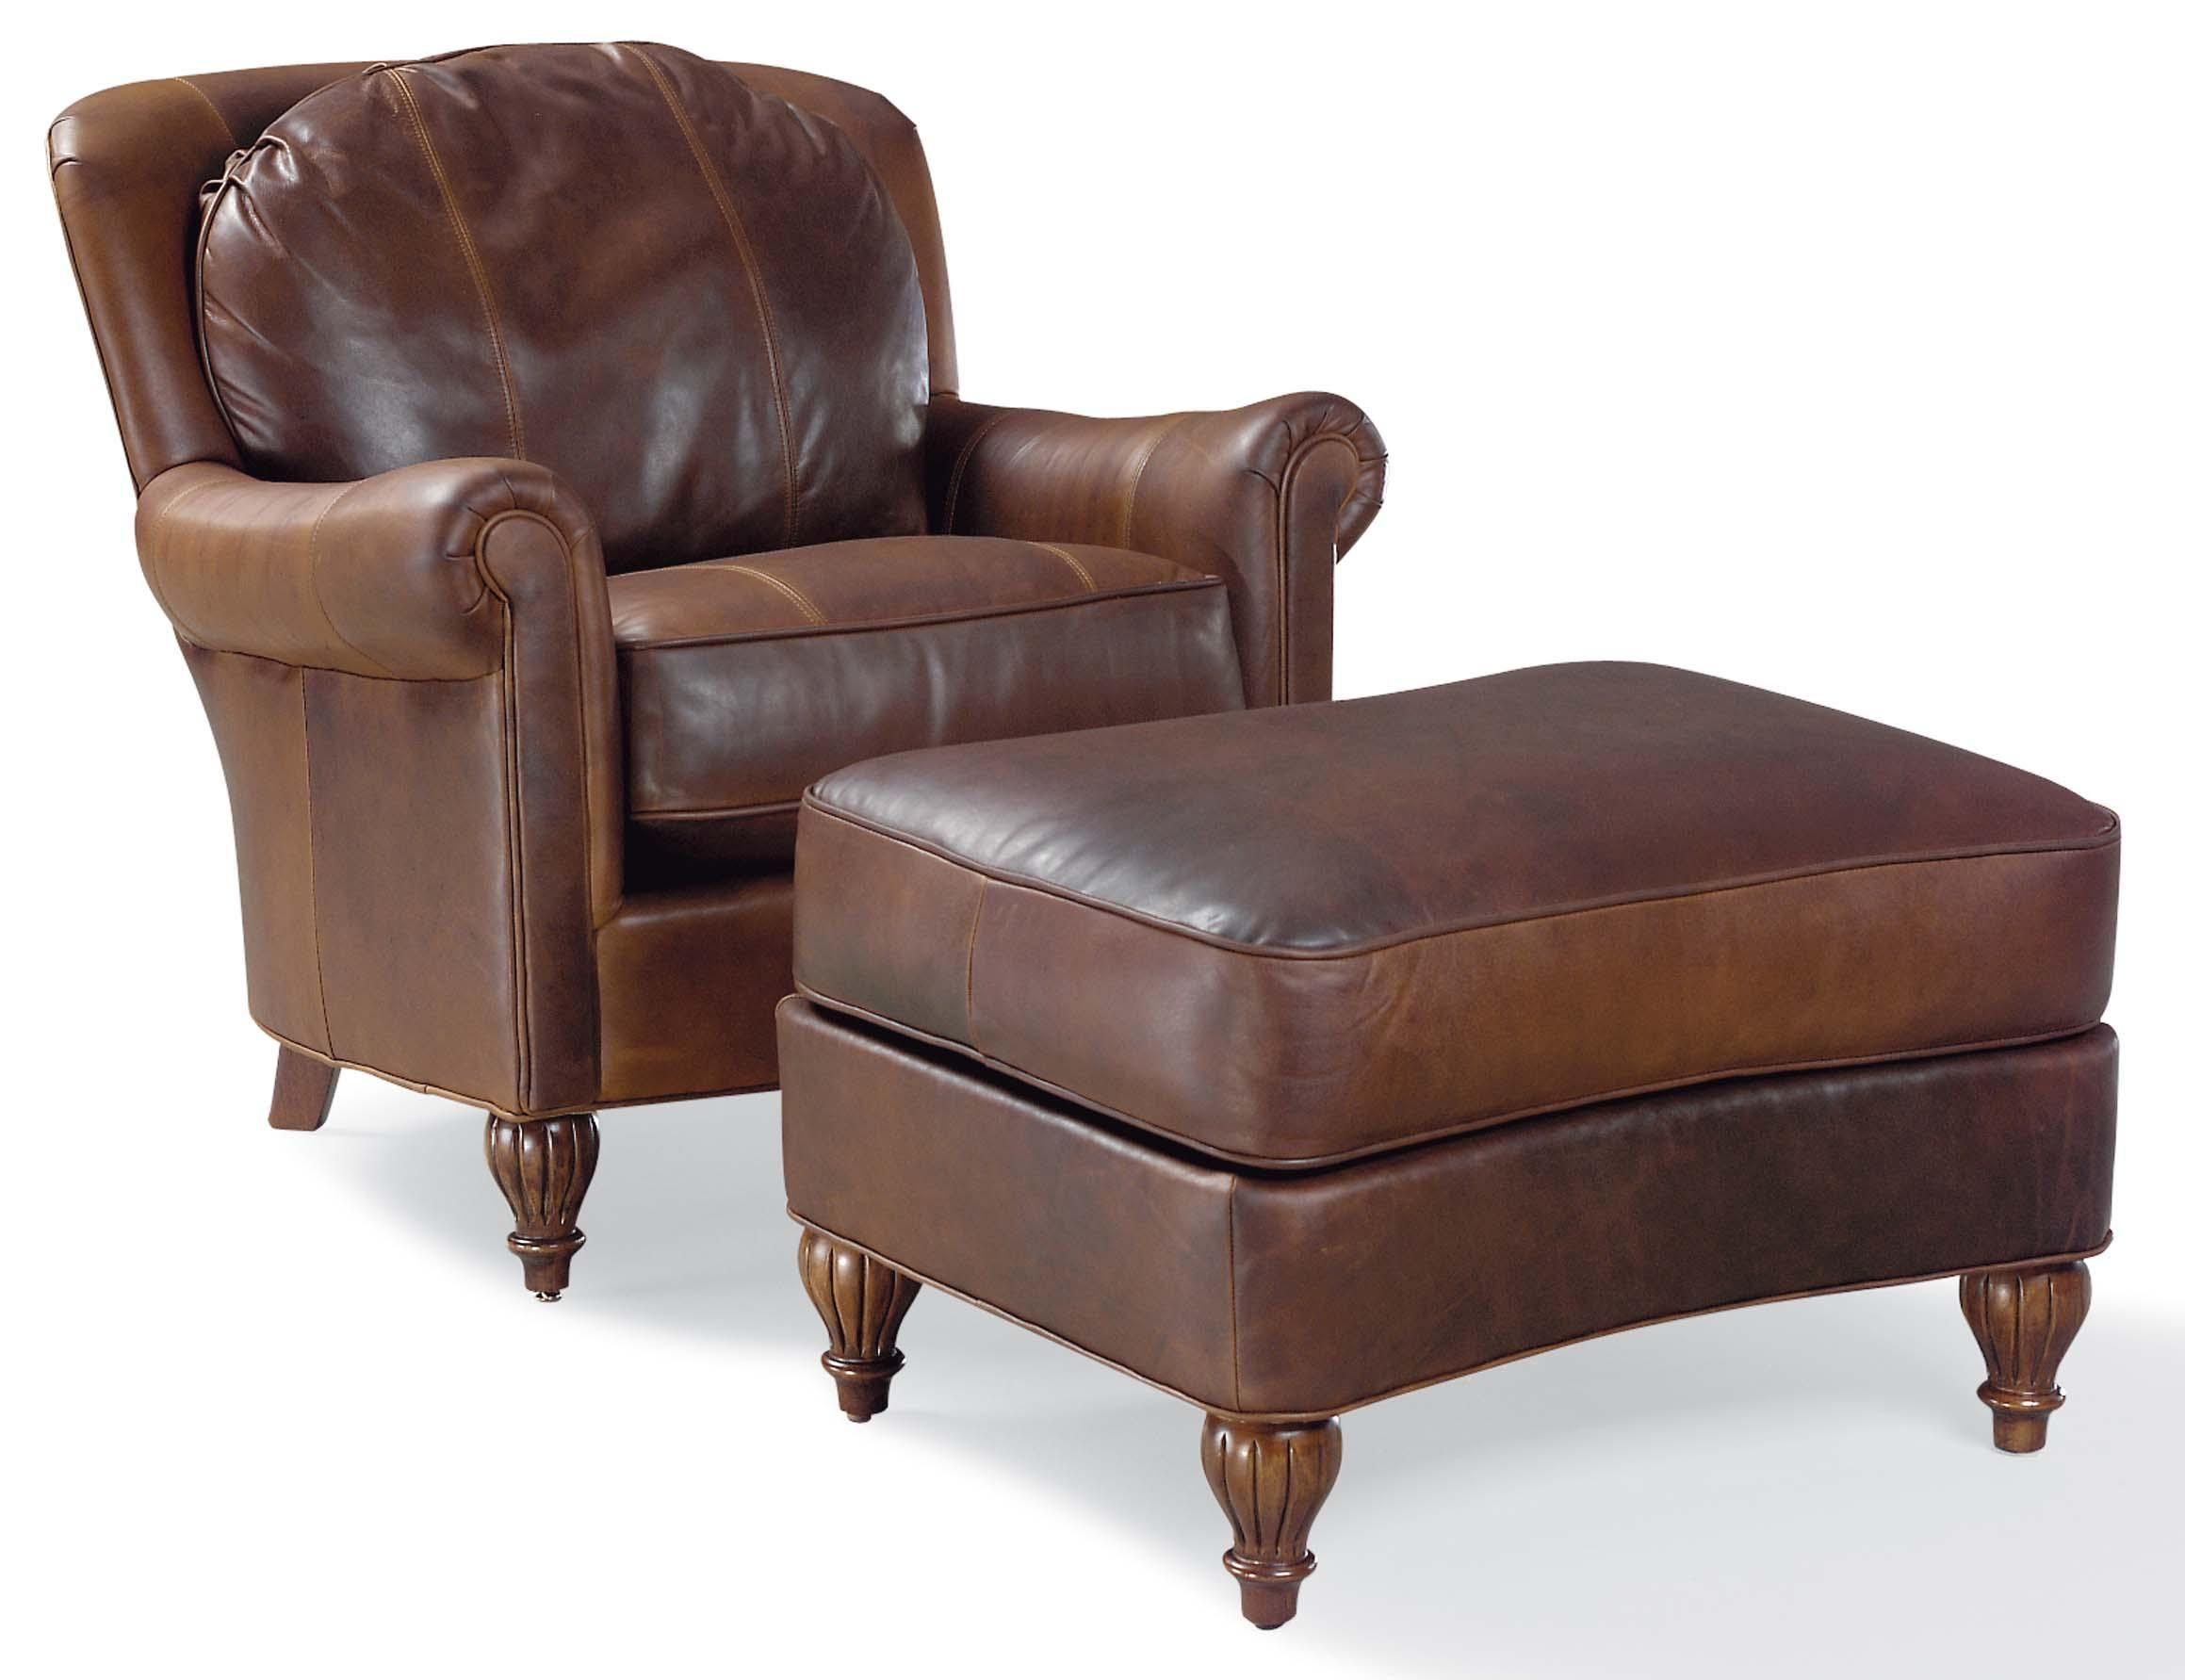 3724 traditional chair and ottoman with turned wood feet